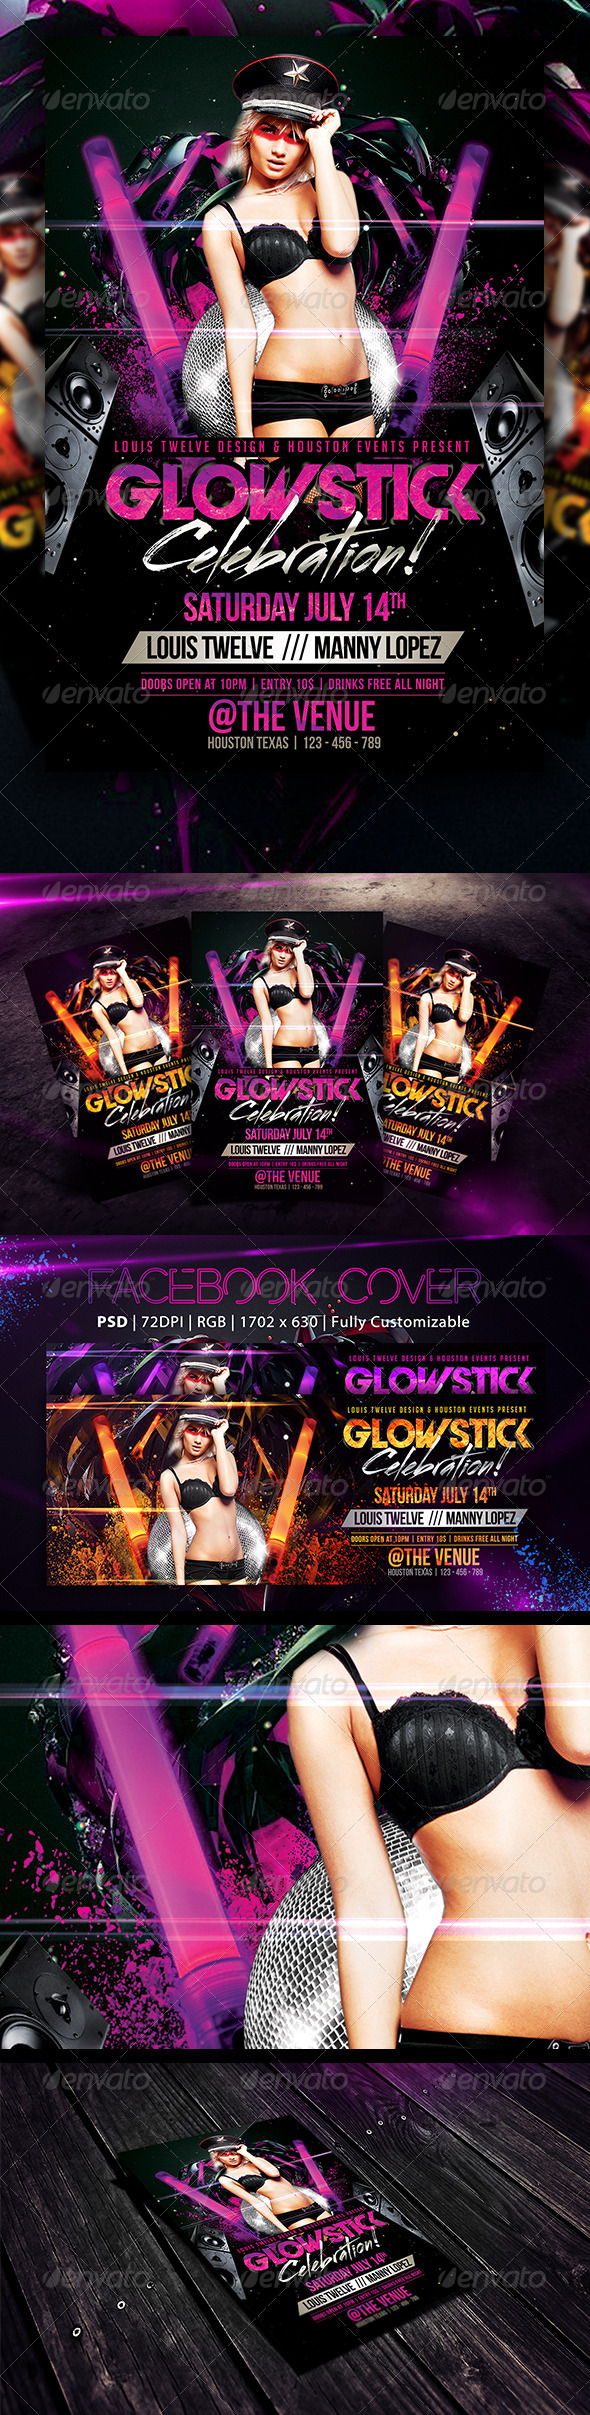 GraphicRiver Glow Stick Party Flyer & FB Cover 5953732